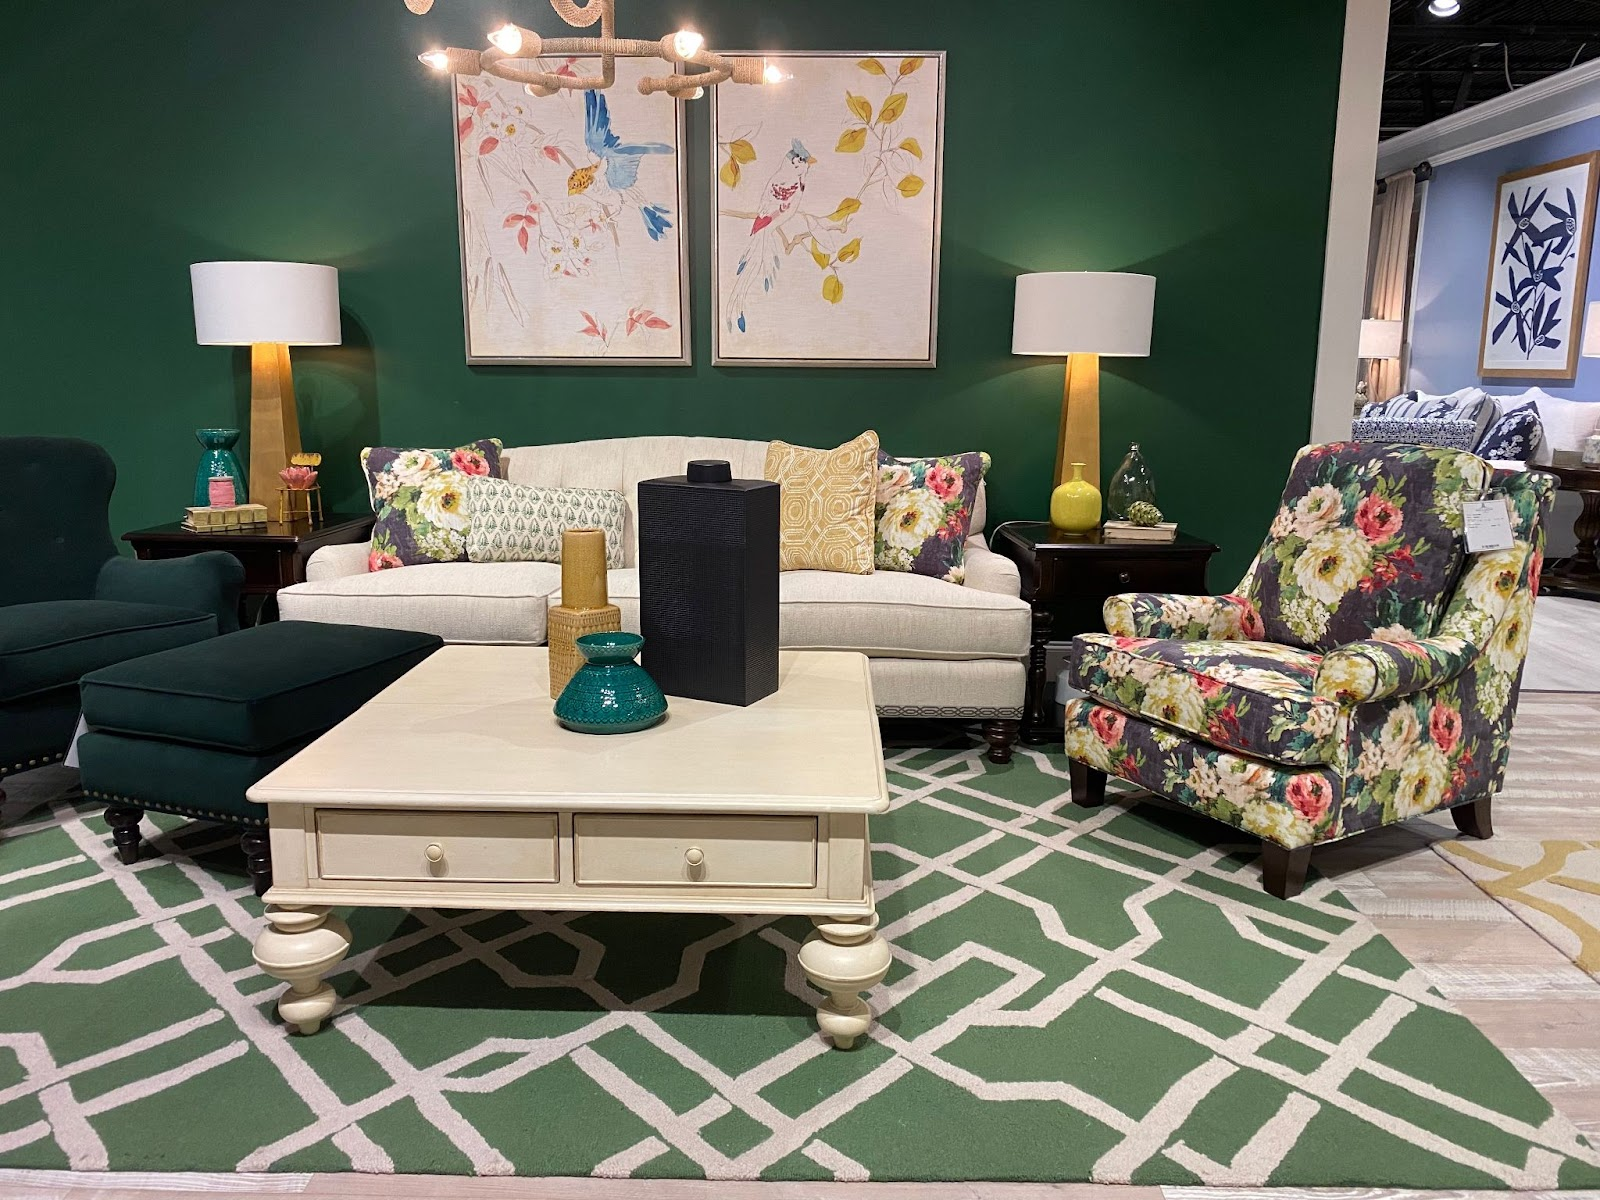 superior-construction-lebanon-tn-select-durable-fabrics-showroom-living-room-set-with-floral-patters-green-wall-and-accent-chair